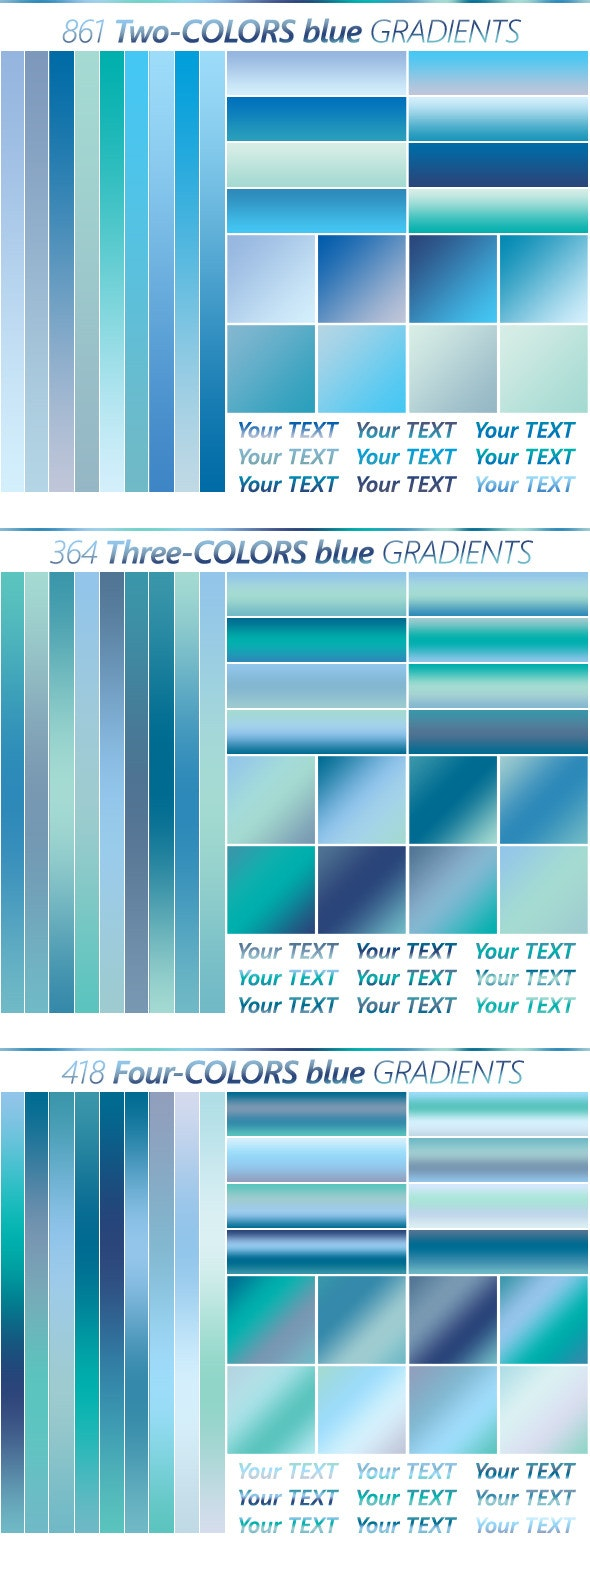 The Ultimate Blue Gradients Collection - Photoshop Add-ons